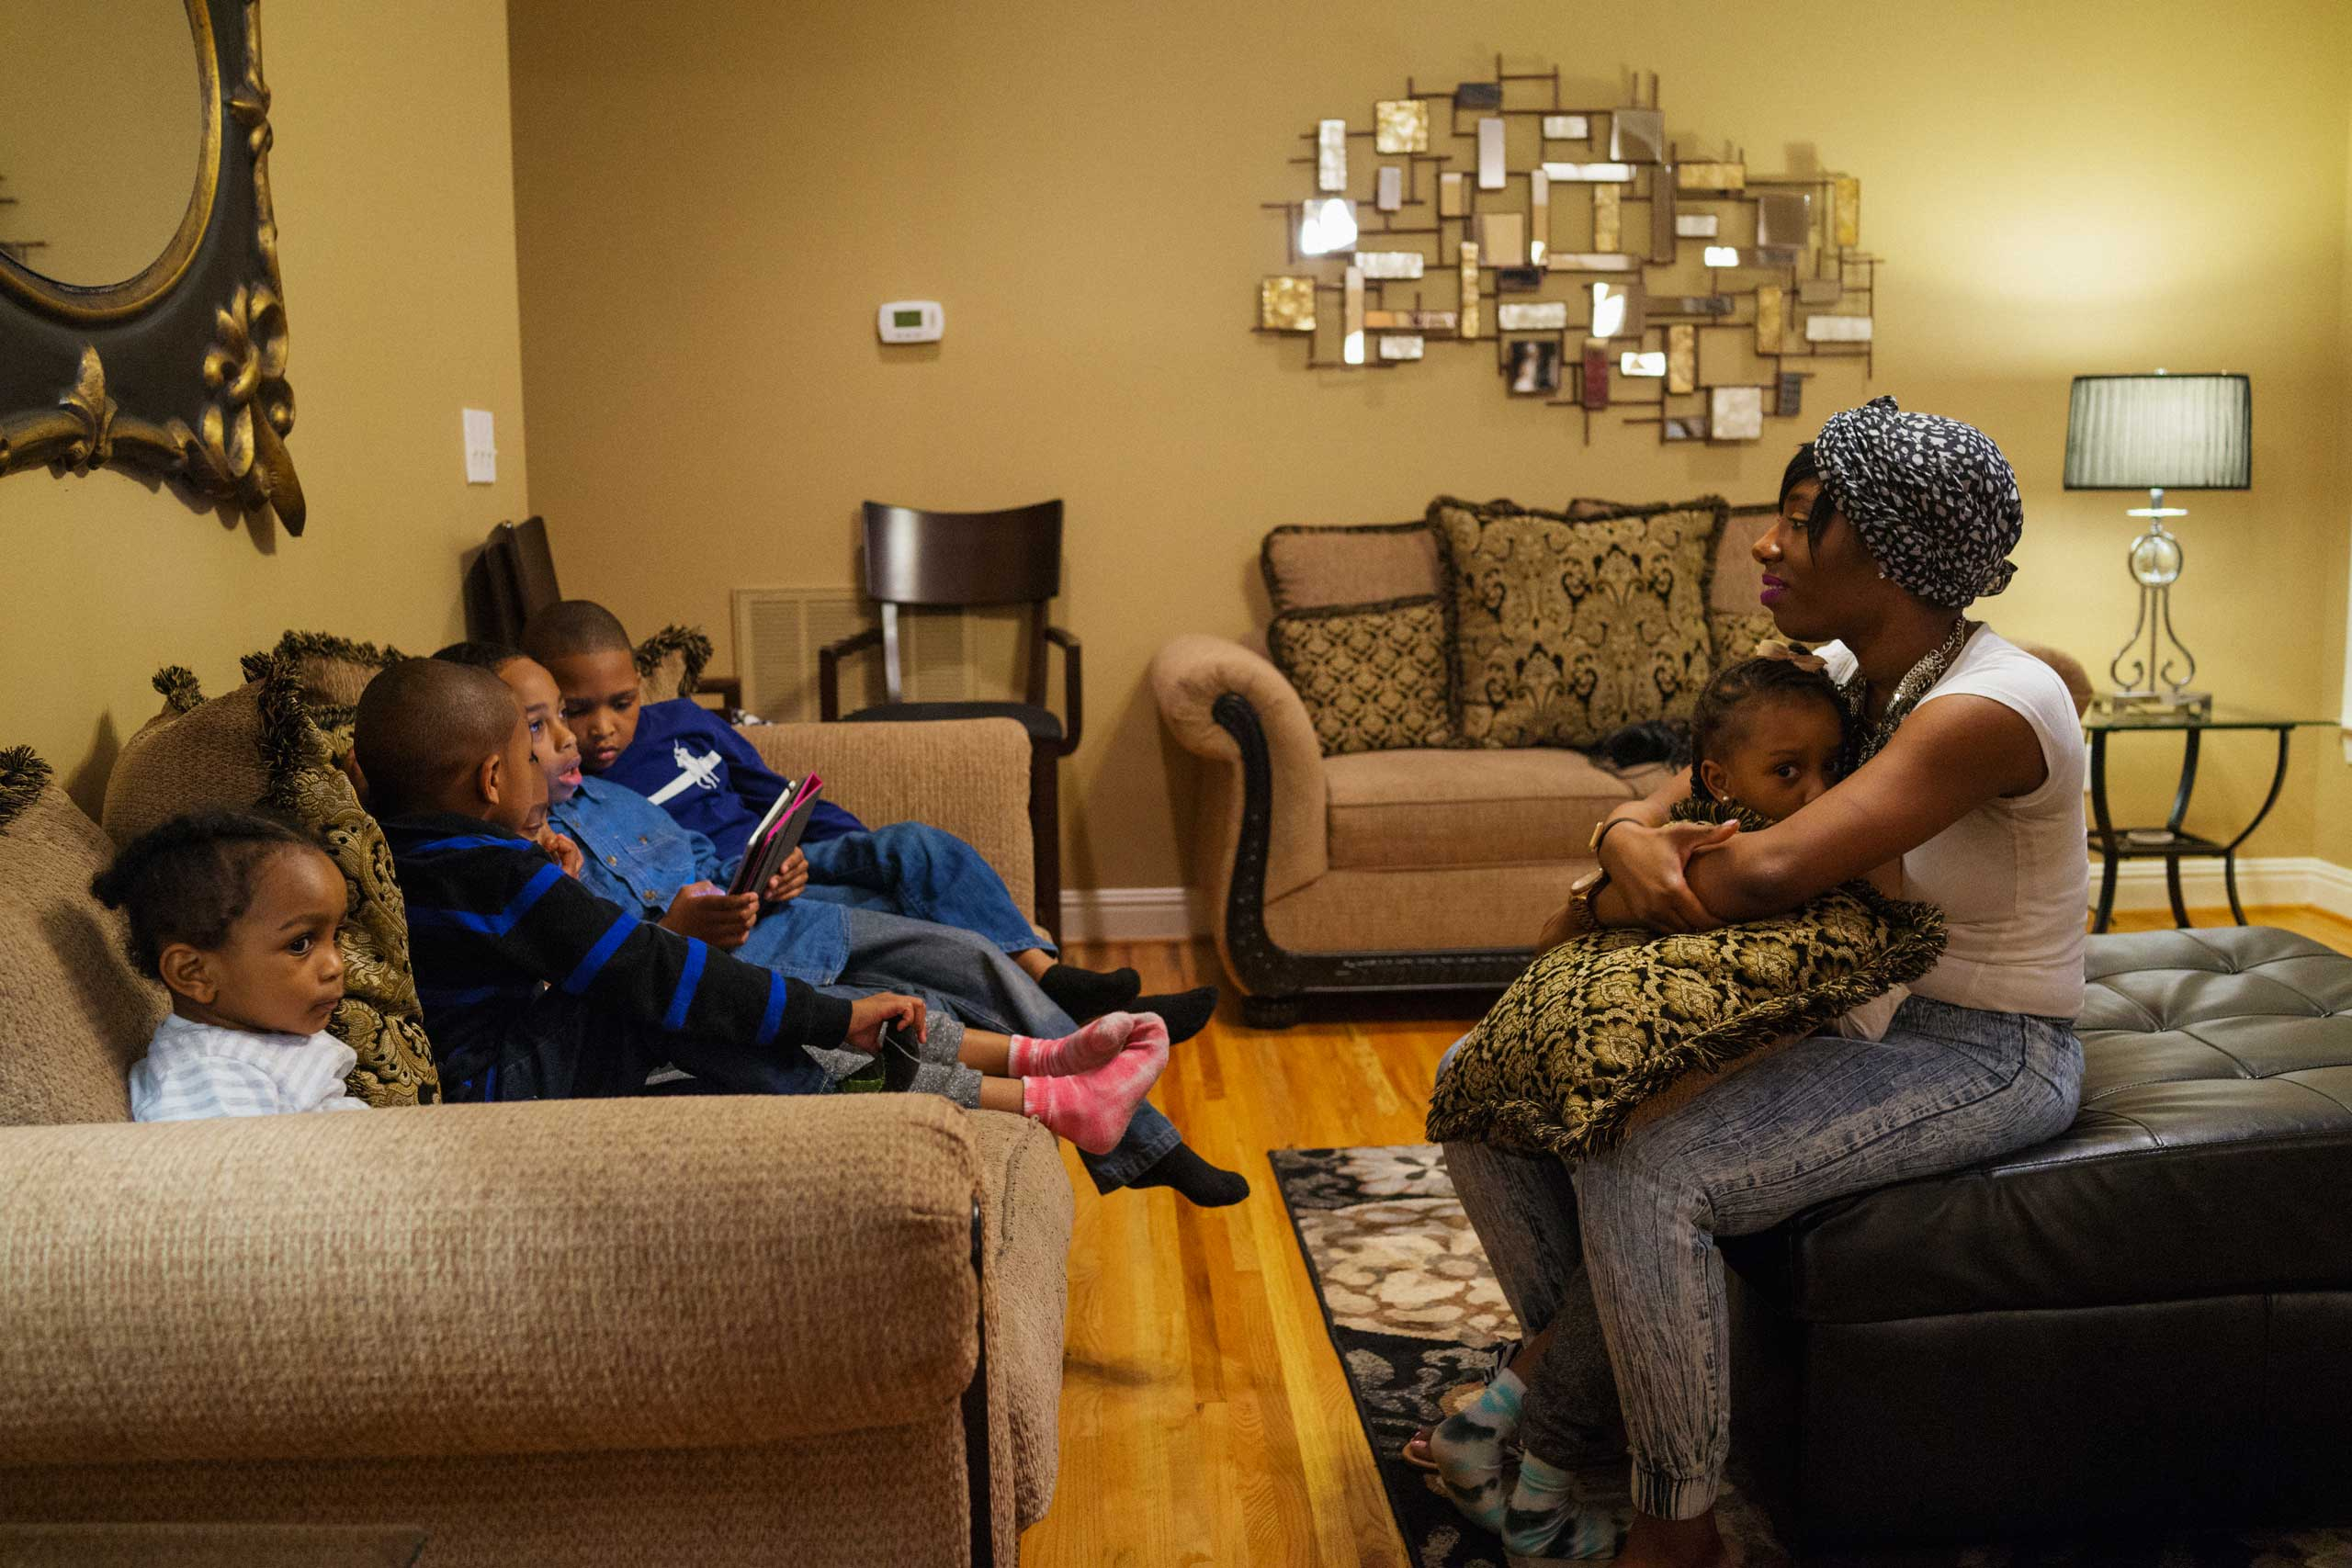 Angelique McClure hangs out with her nieces and nephews in the living room during a family dinner at her father's home.